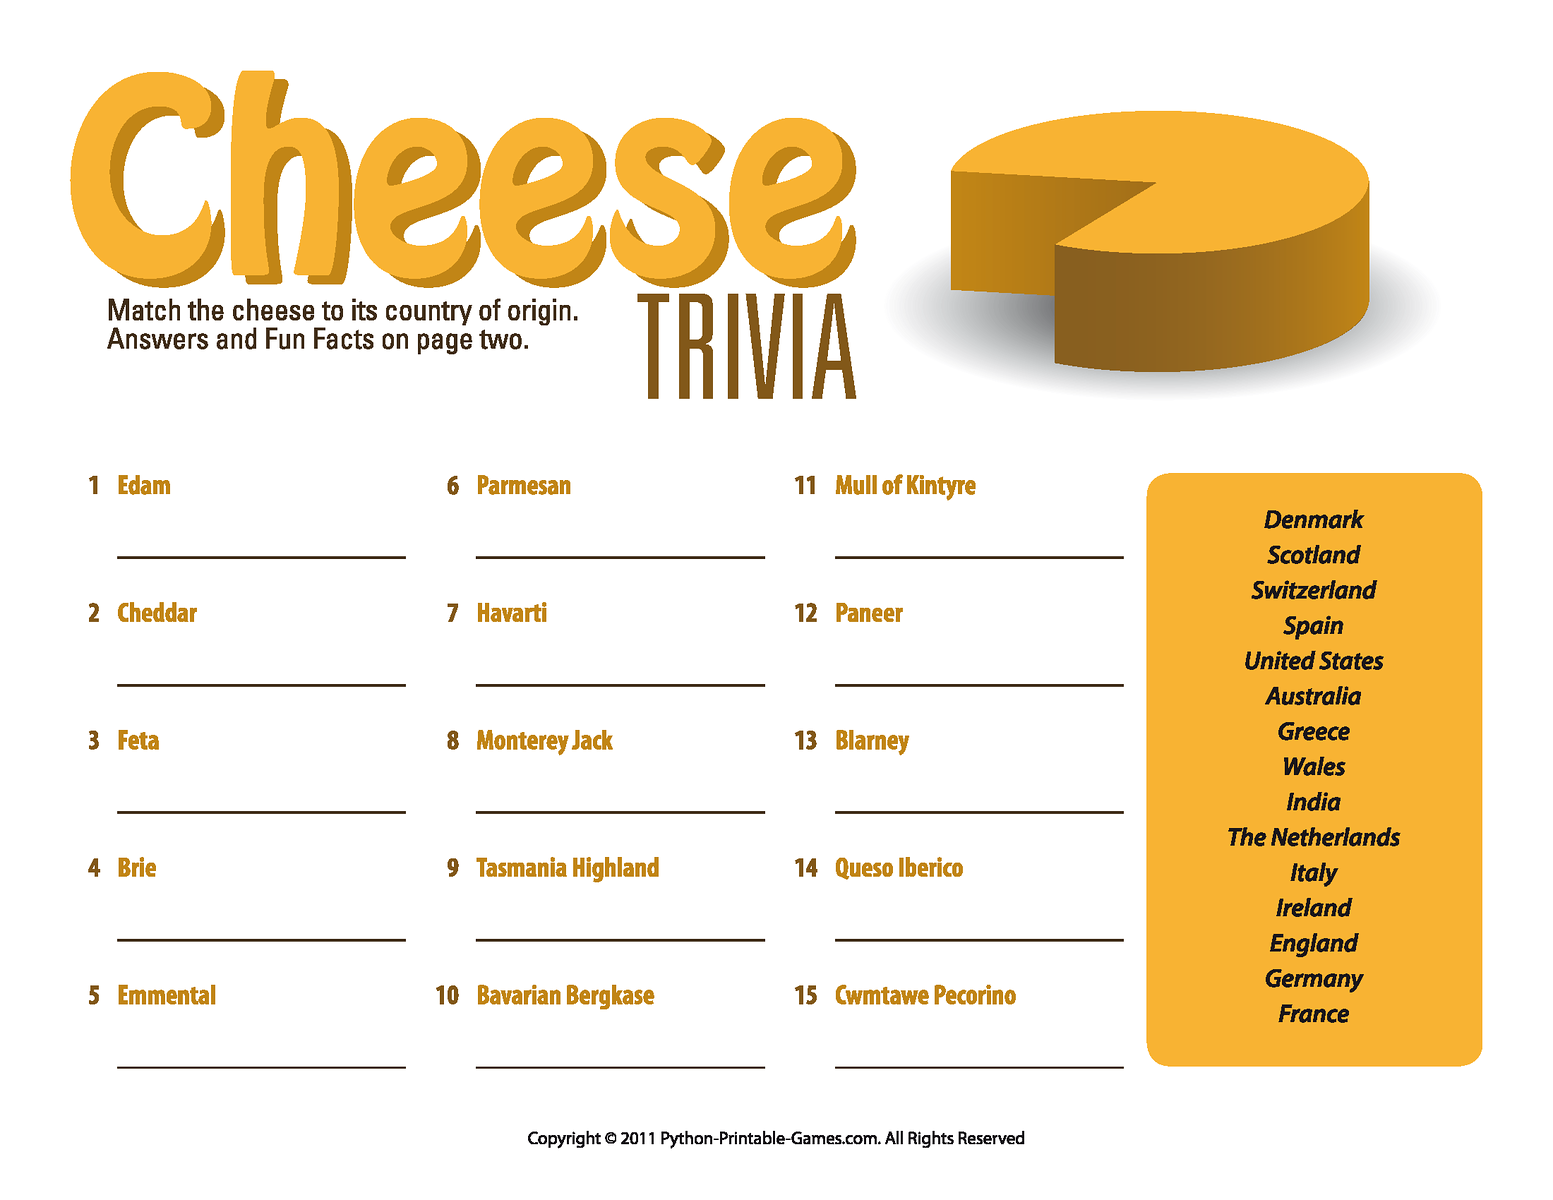 Fast Food Chain Trivia Questions